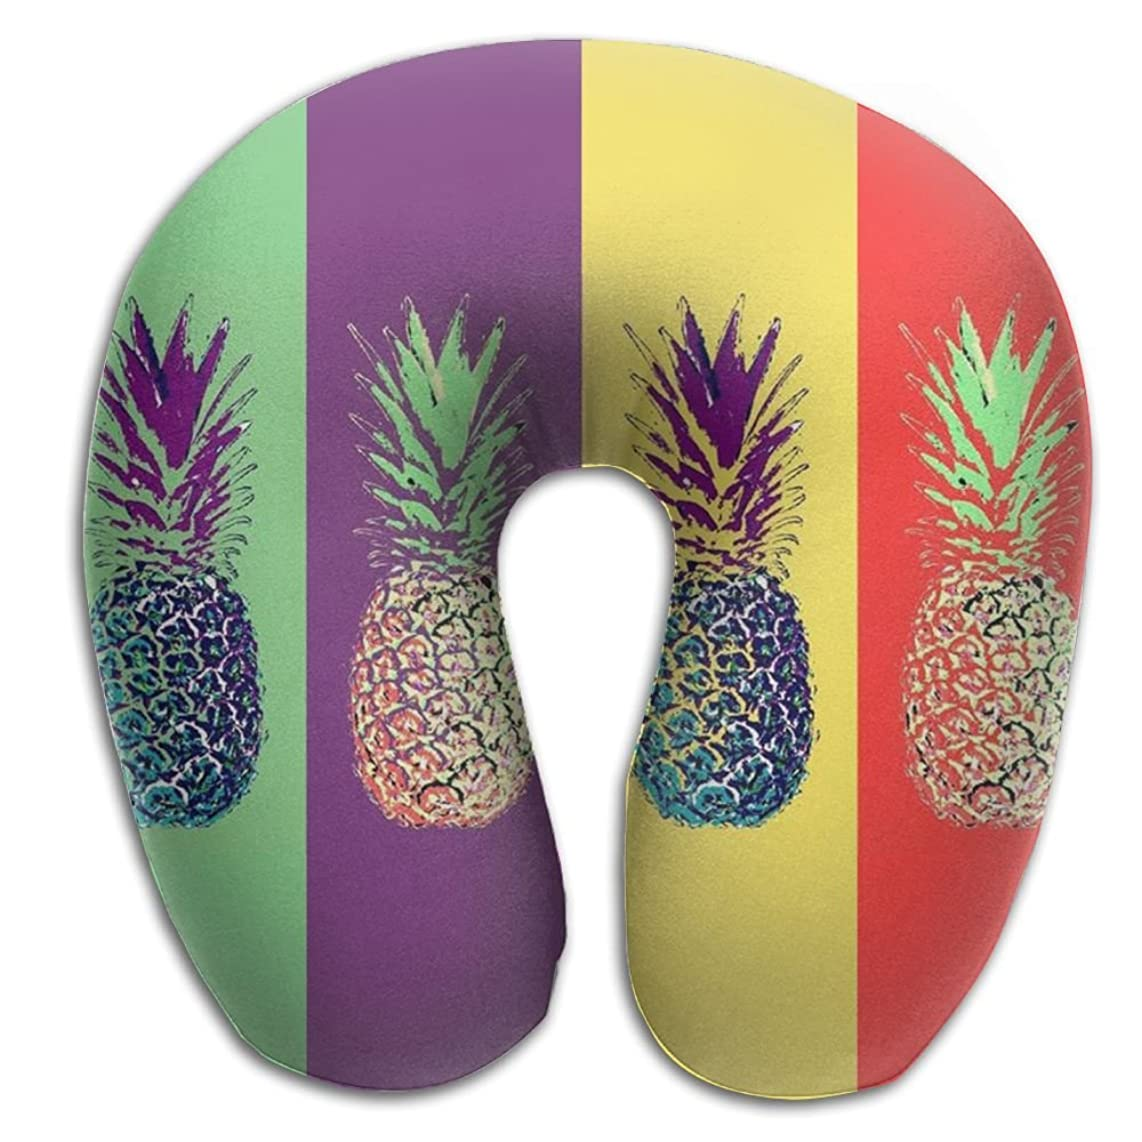 Memory Foam Neck Pillow Pineapple Comfy Soft U-Shape Cervical Pillow Head Support For Travel Office Sleeping